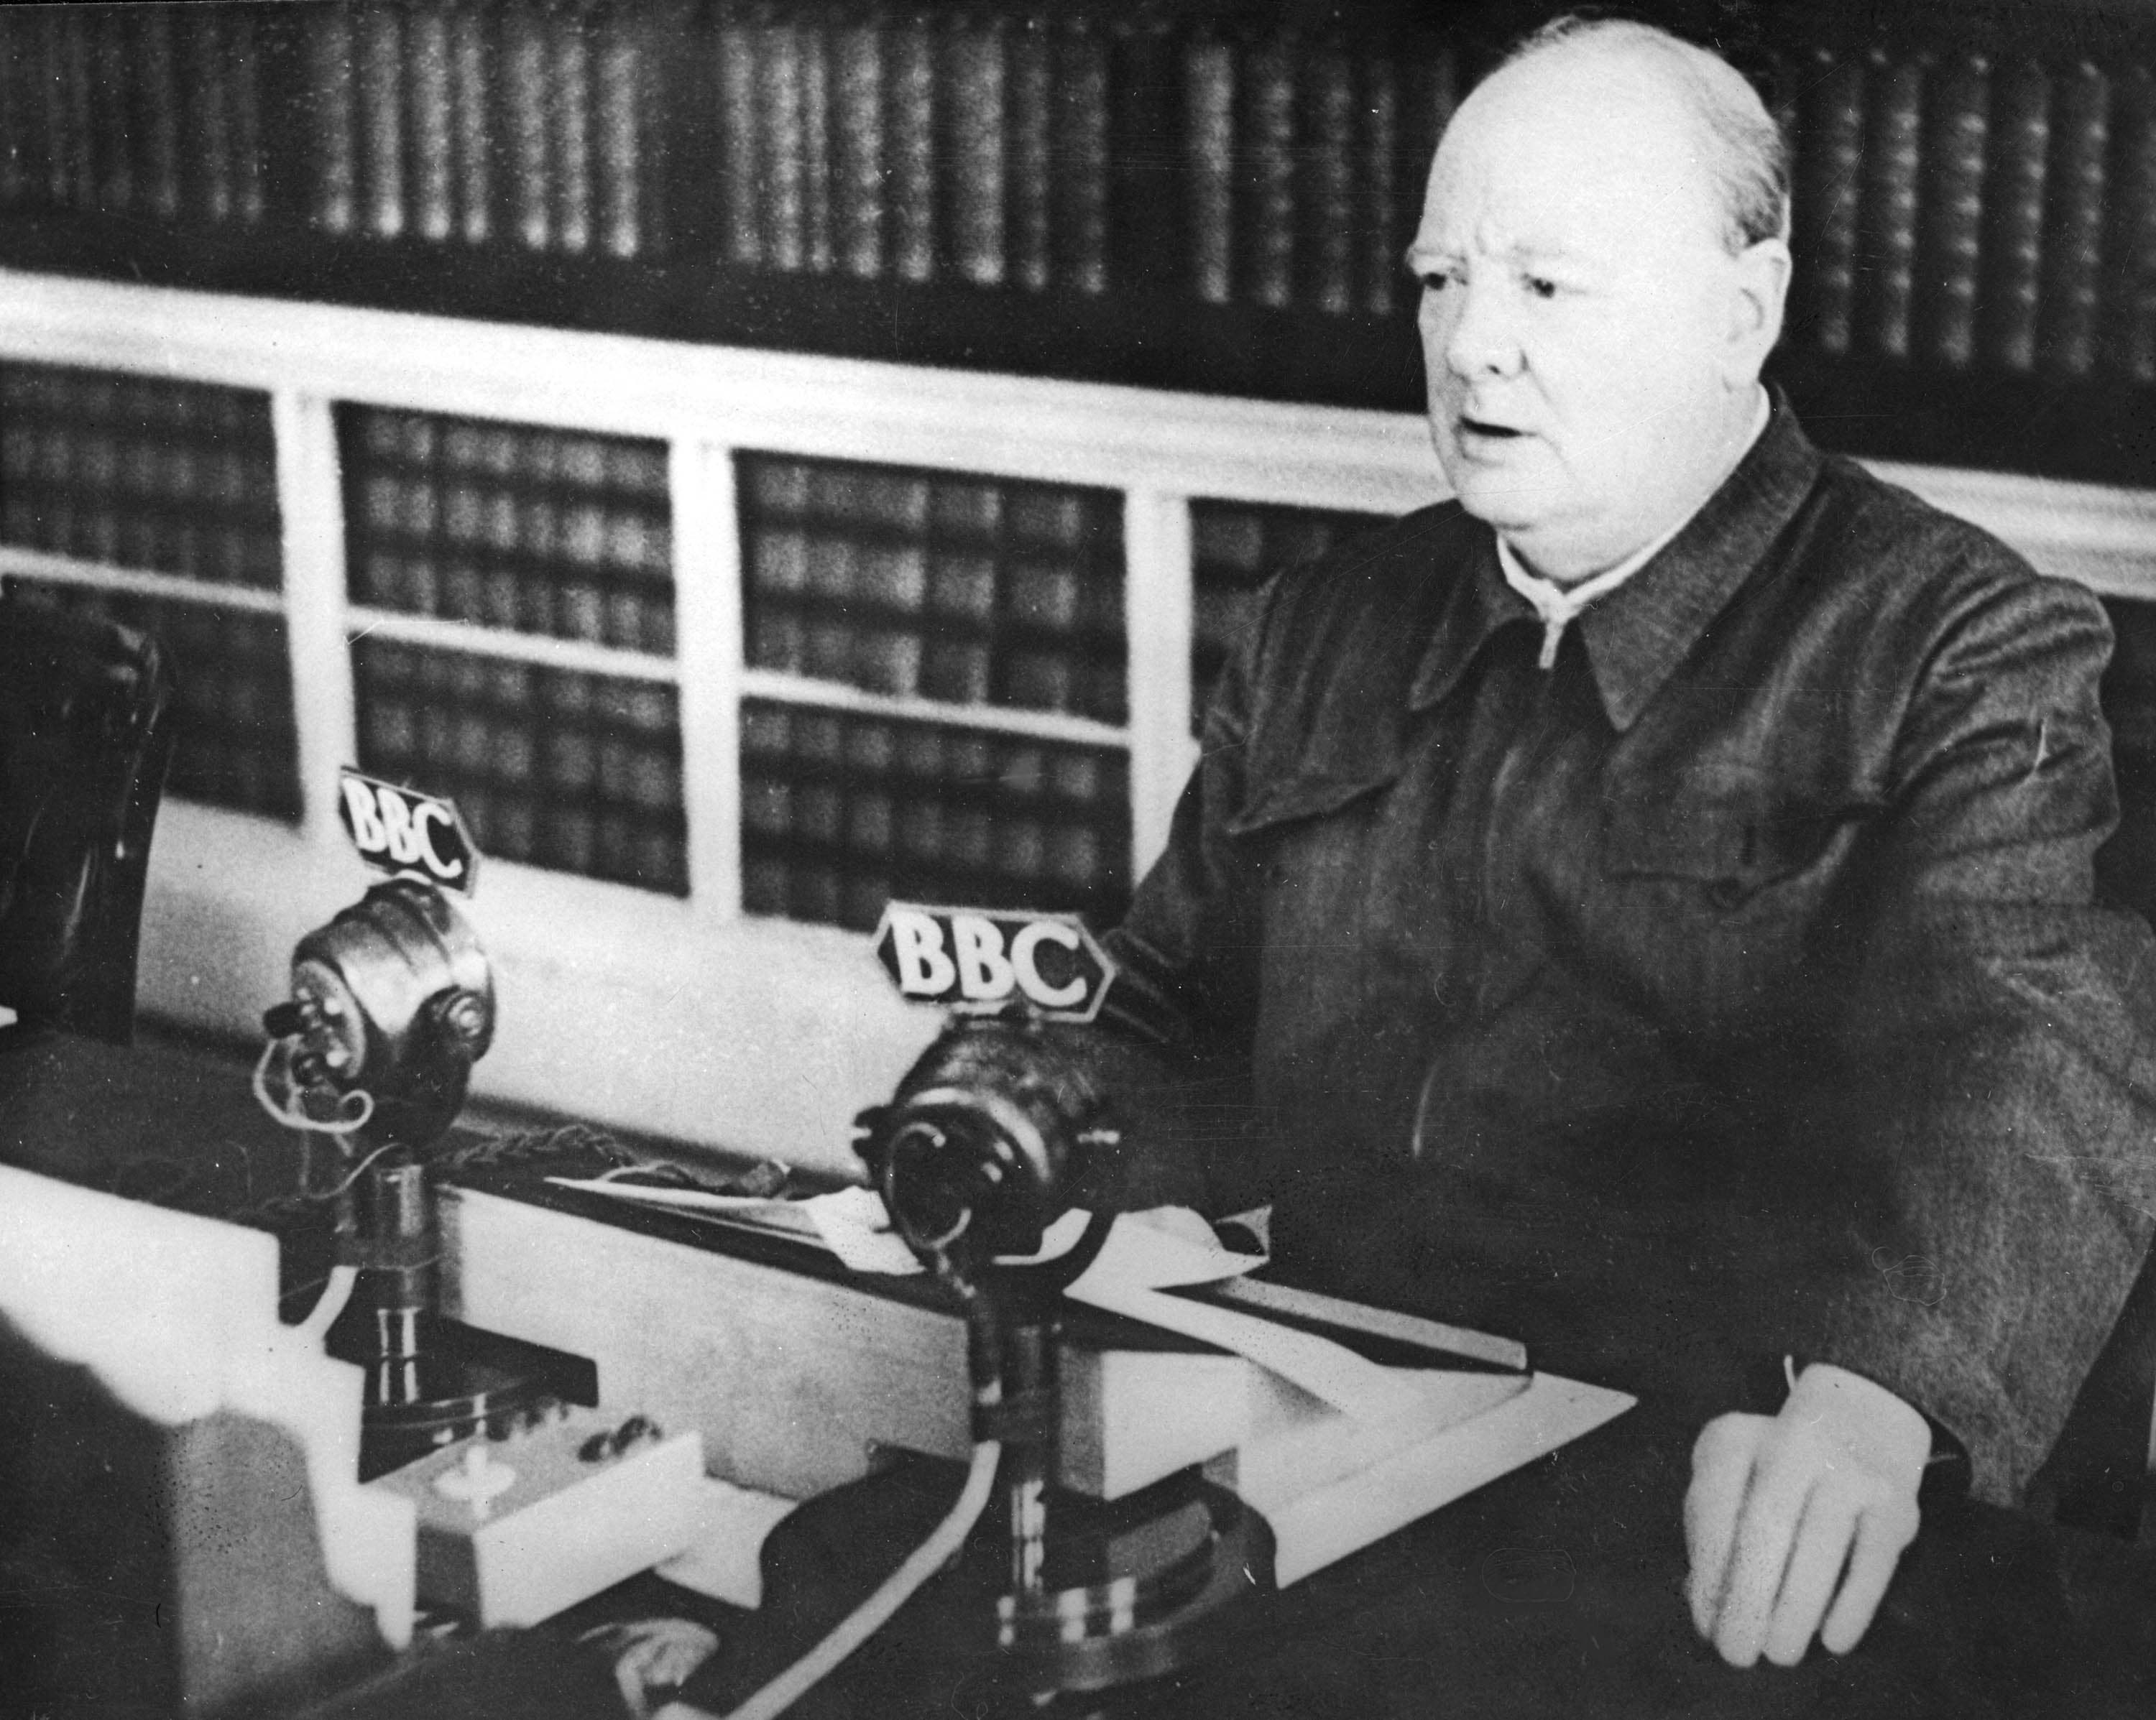 Britain's Prime Minister Winston Churchill makes a radio broadcast at No. 10 Downing Street, London, in November 1942. (AP Photo)